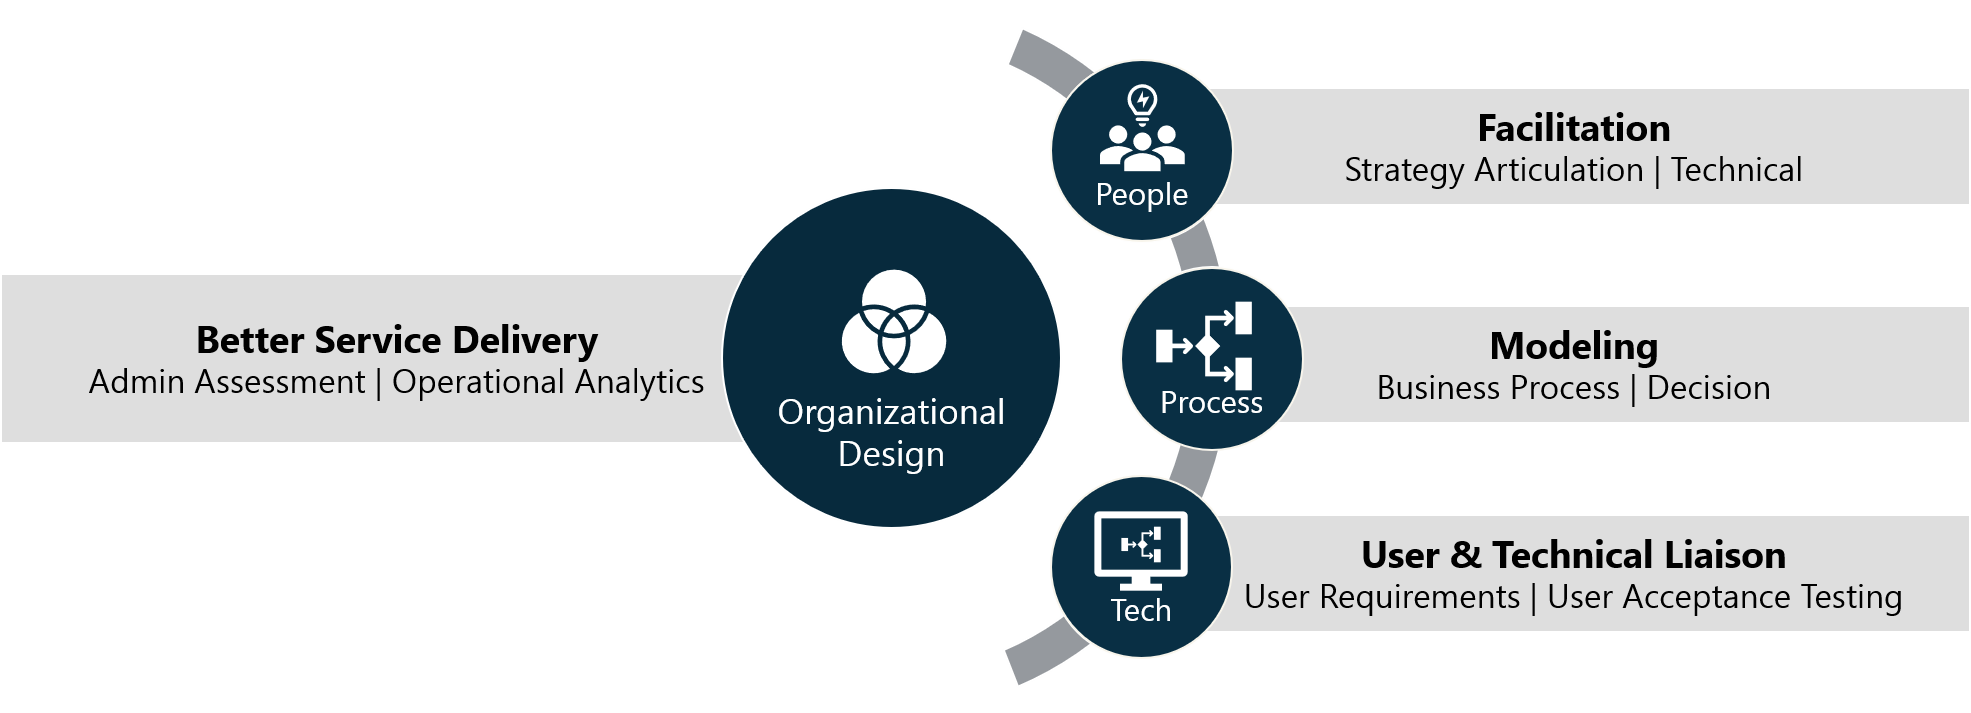 Organizational Design: Better Service Delivery - Admin Assessment | Operational Analytics. People: Facilitation - Strategy Articulation | Technical. Process: Modeling - Business Process | Decision. Tech: User & Technical Liaison - User Requirements | User Acceptance Testing